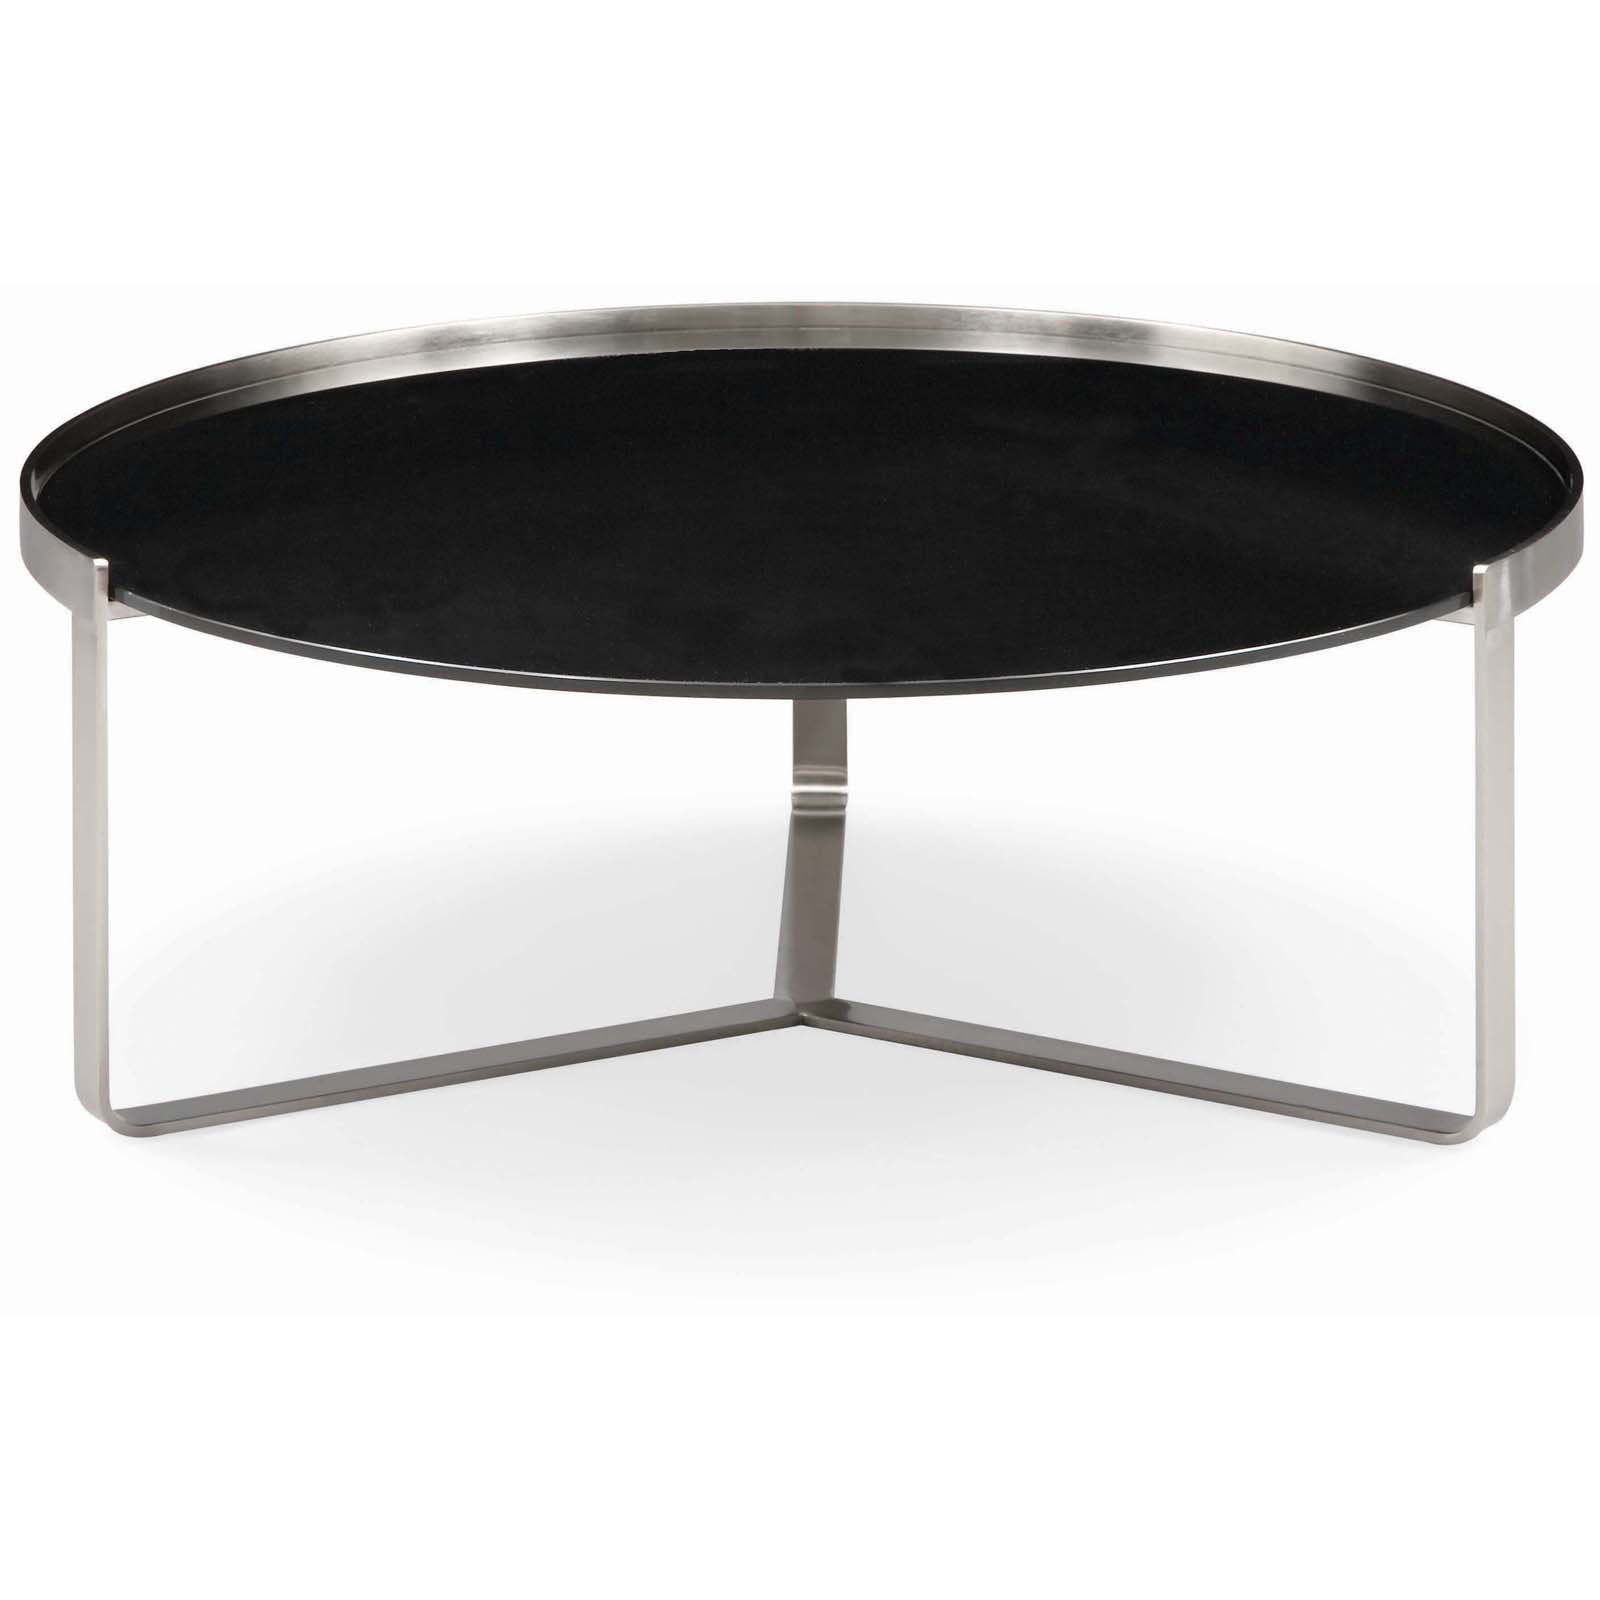 Bernhardt soho round cocktail table coffee tables at hayneedle Bernhardt coffee tables